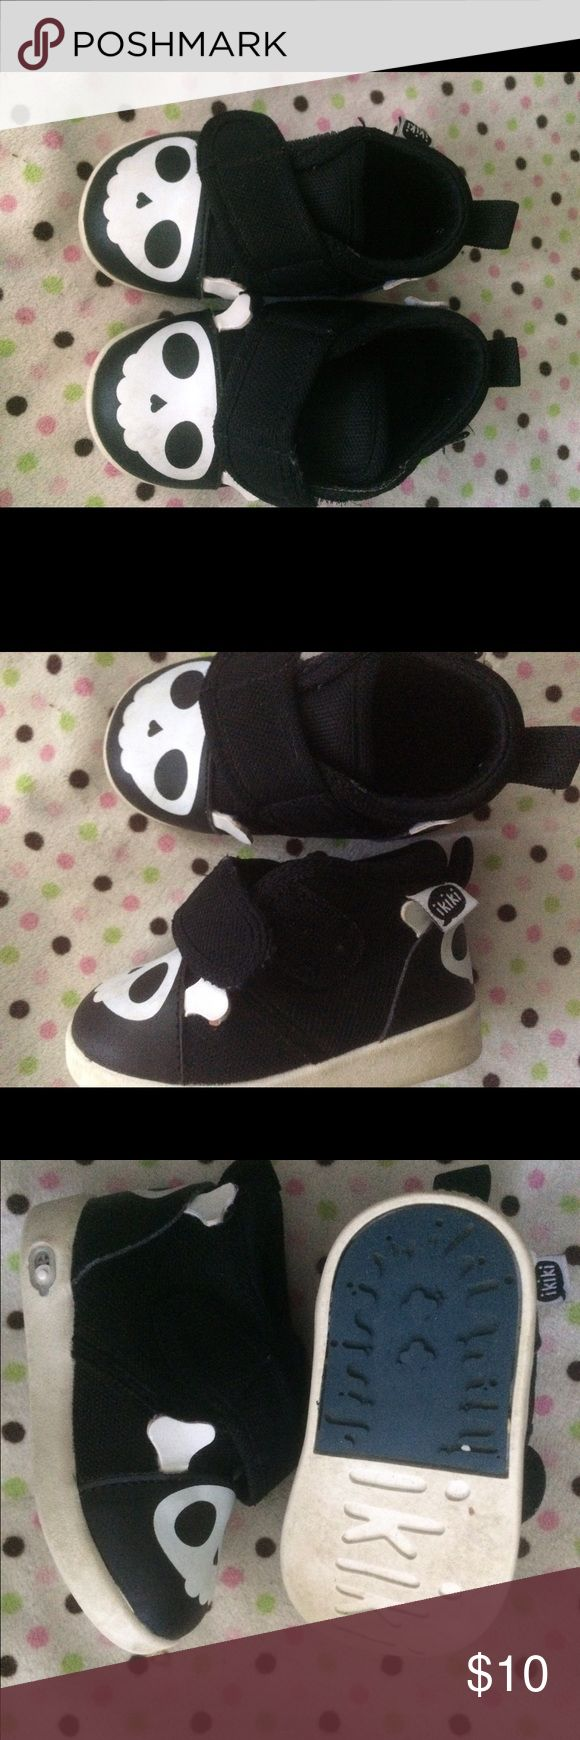 Ikiki squeaky shoes skull size 5 So cute! Squeaky sneakers with a cute skull, used but still in good shape Shoes Sneakers